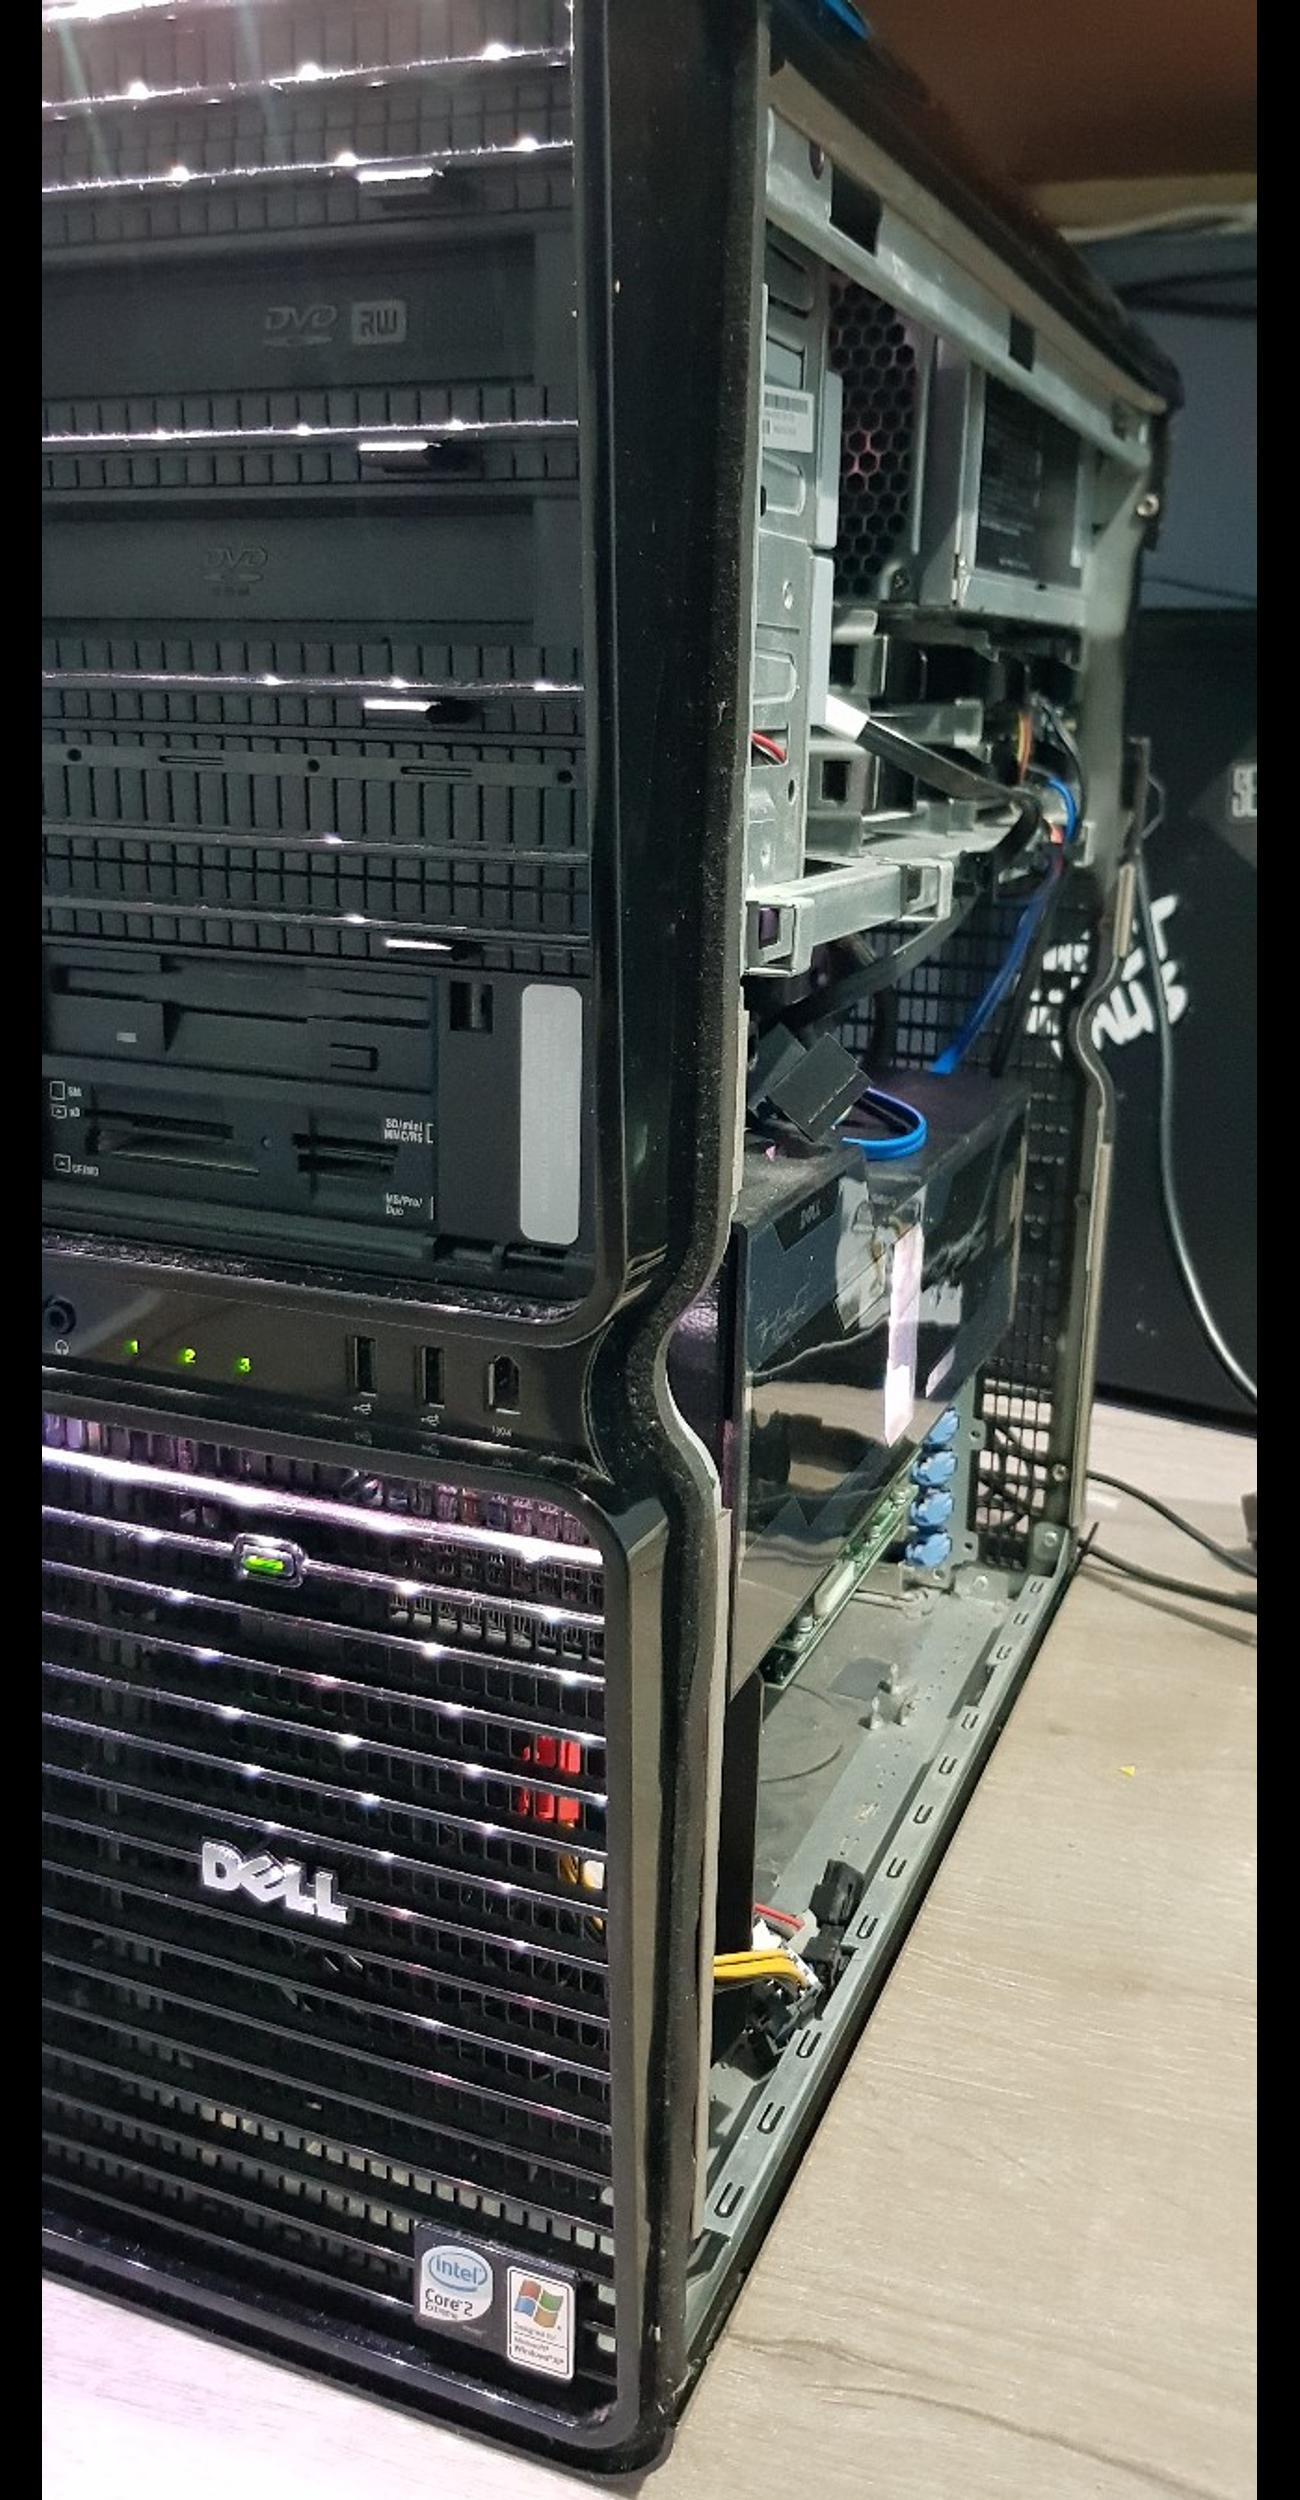 Dell XPS 710 Gaming PC in B11 Birmingham for £45 00 for sale